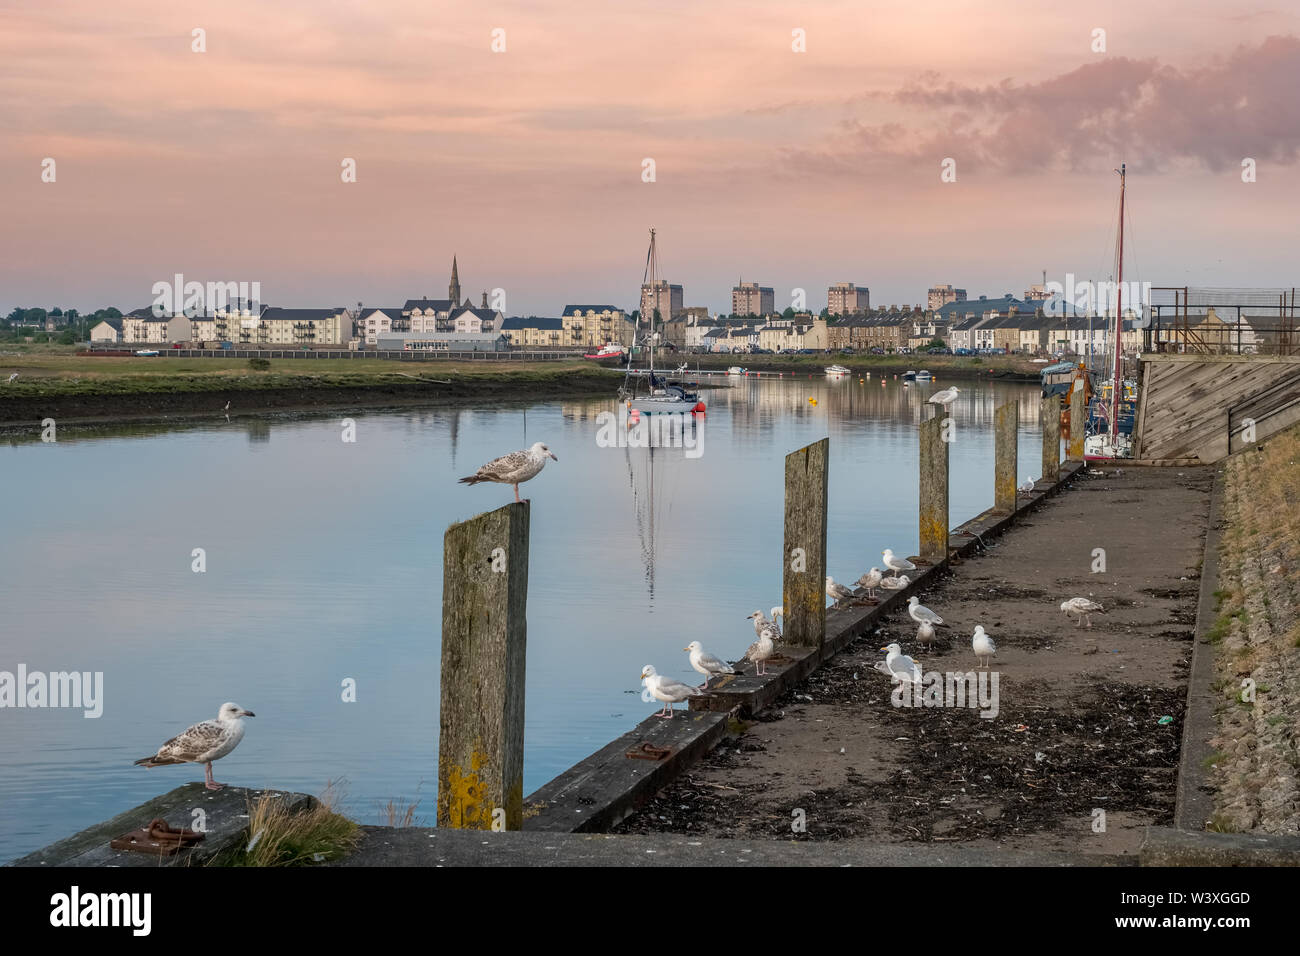 Irvine Harbour North Ayrshire Scotland on a calm summers evening with reflections seagulls and boats with the Irvine Town Spires in the distance. Stock Photo